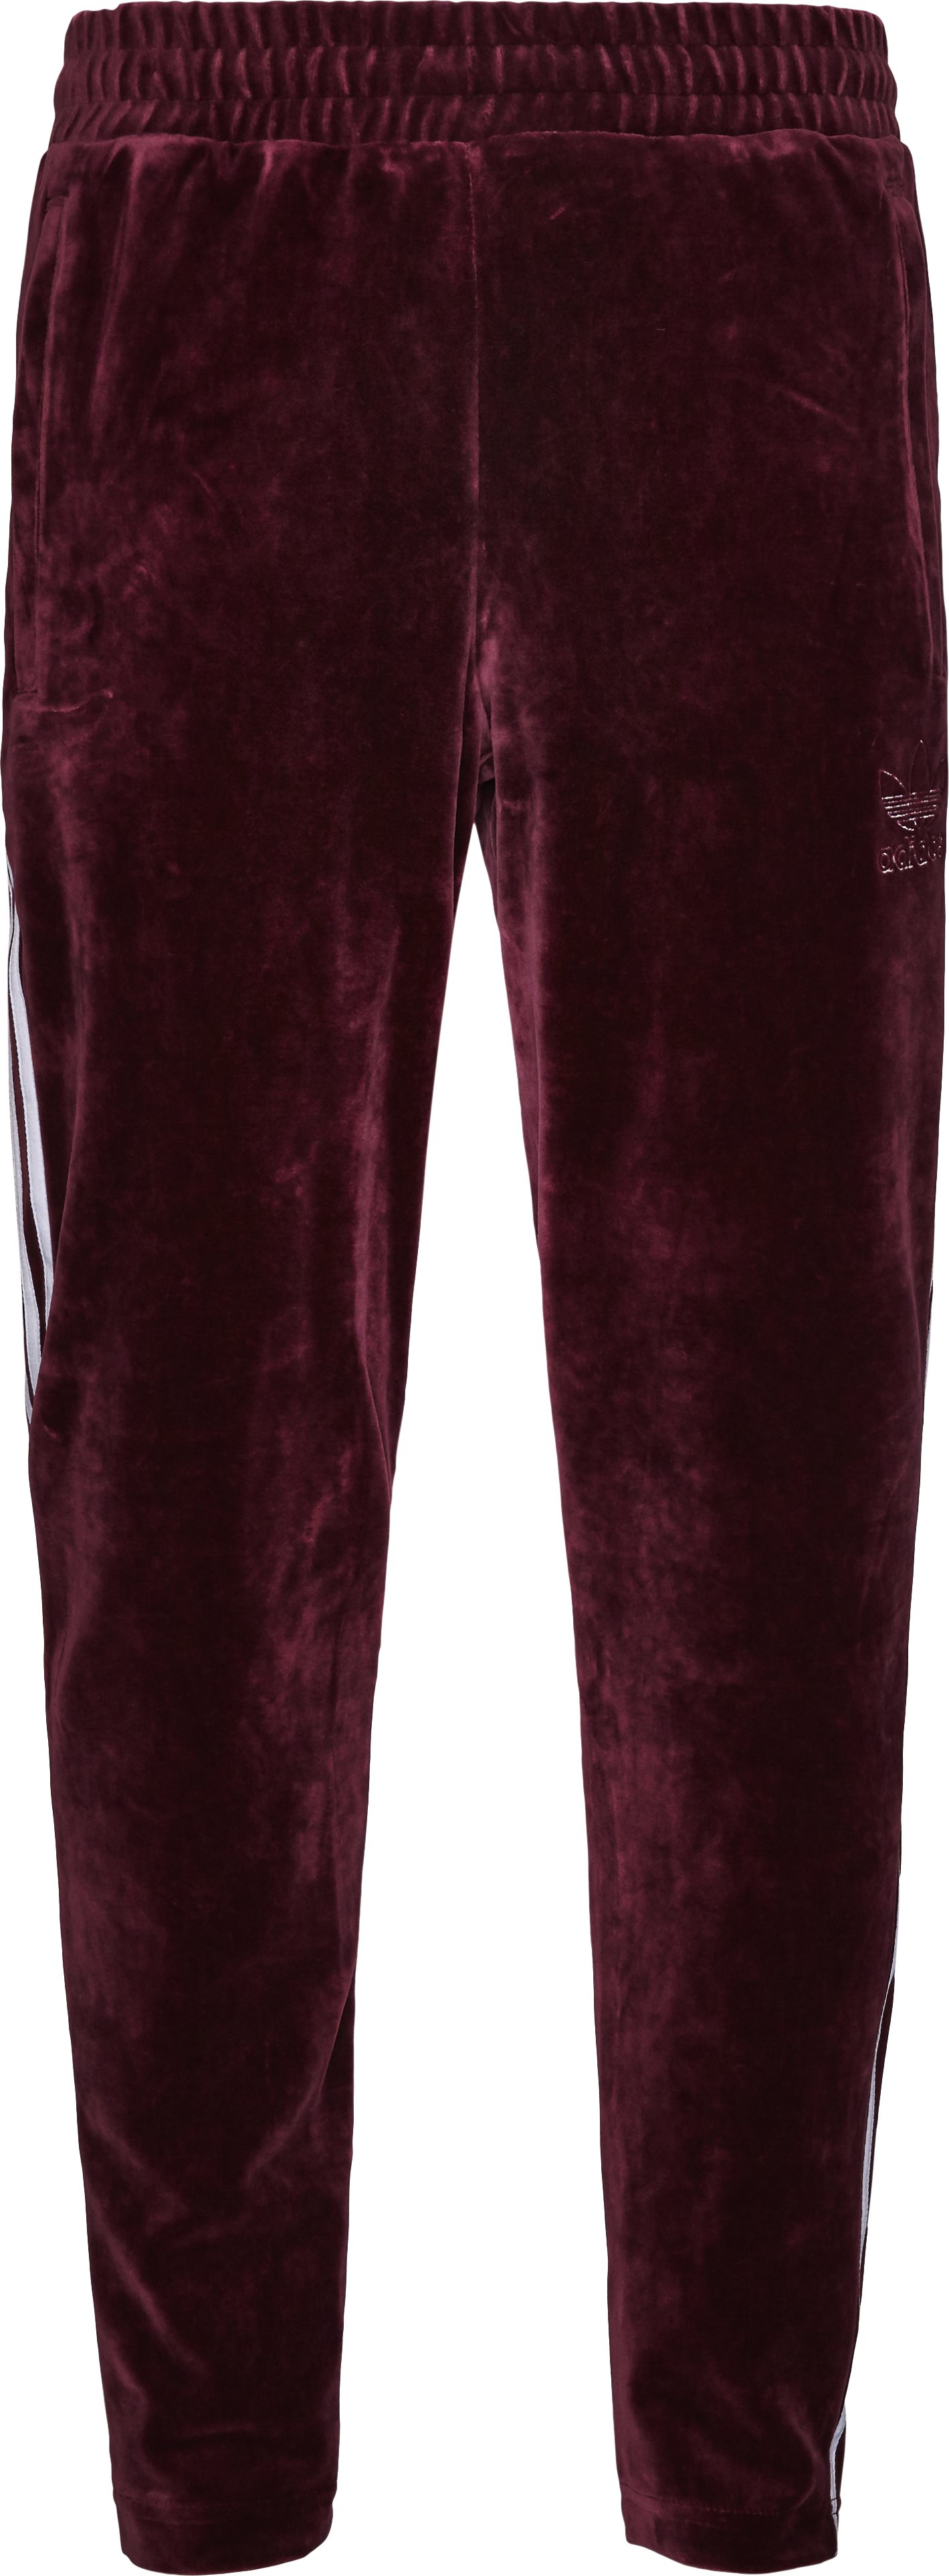 f3c2c696 VELOUR BB DH5784 Bukser BORDEAUX from Adidas Originals 650 DKK